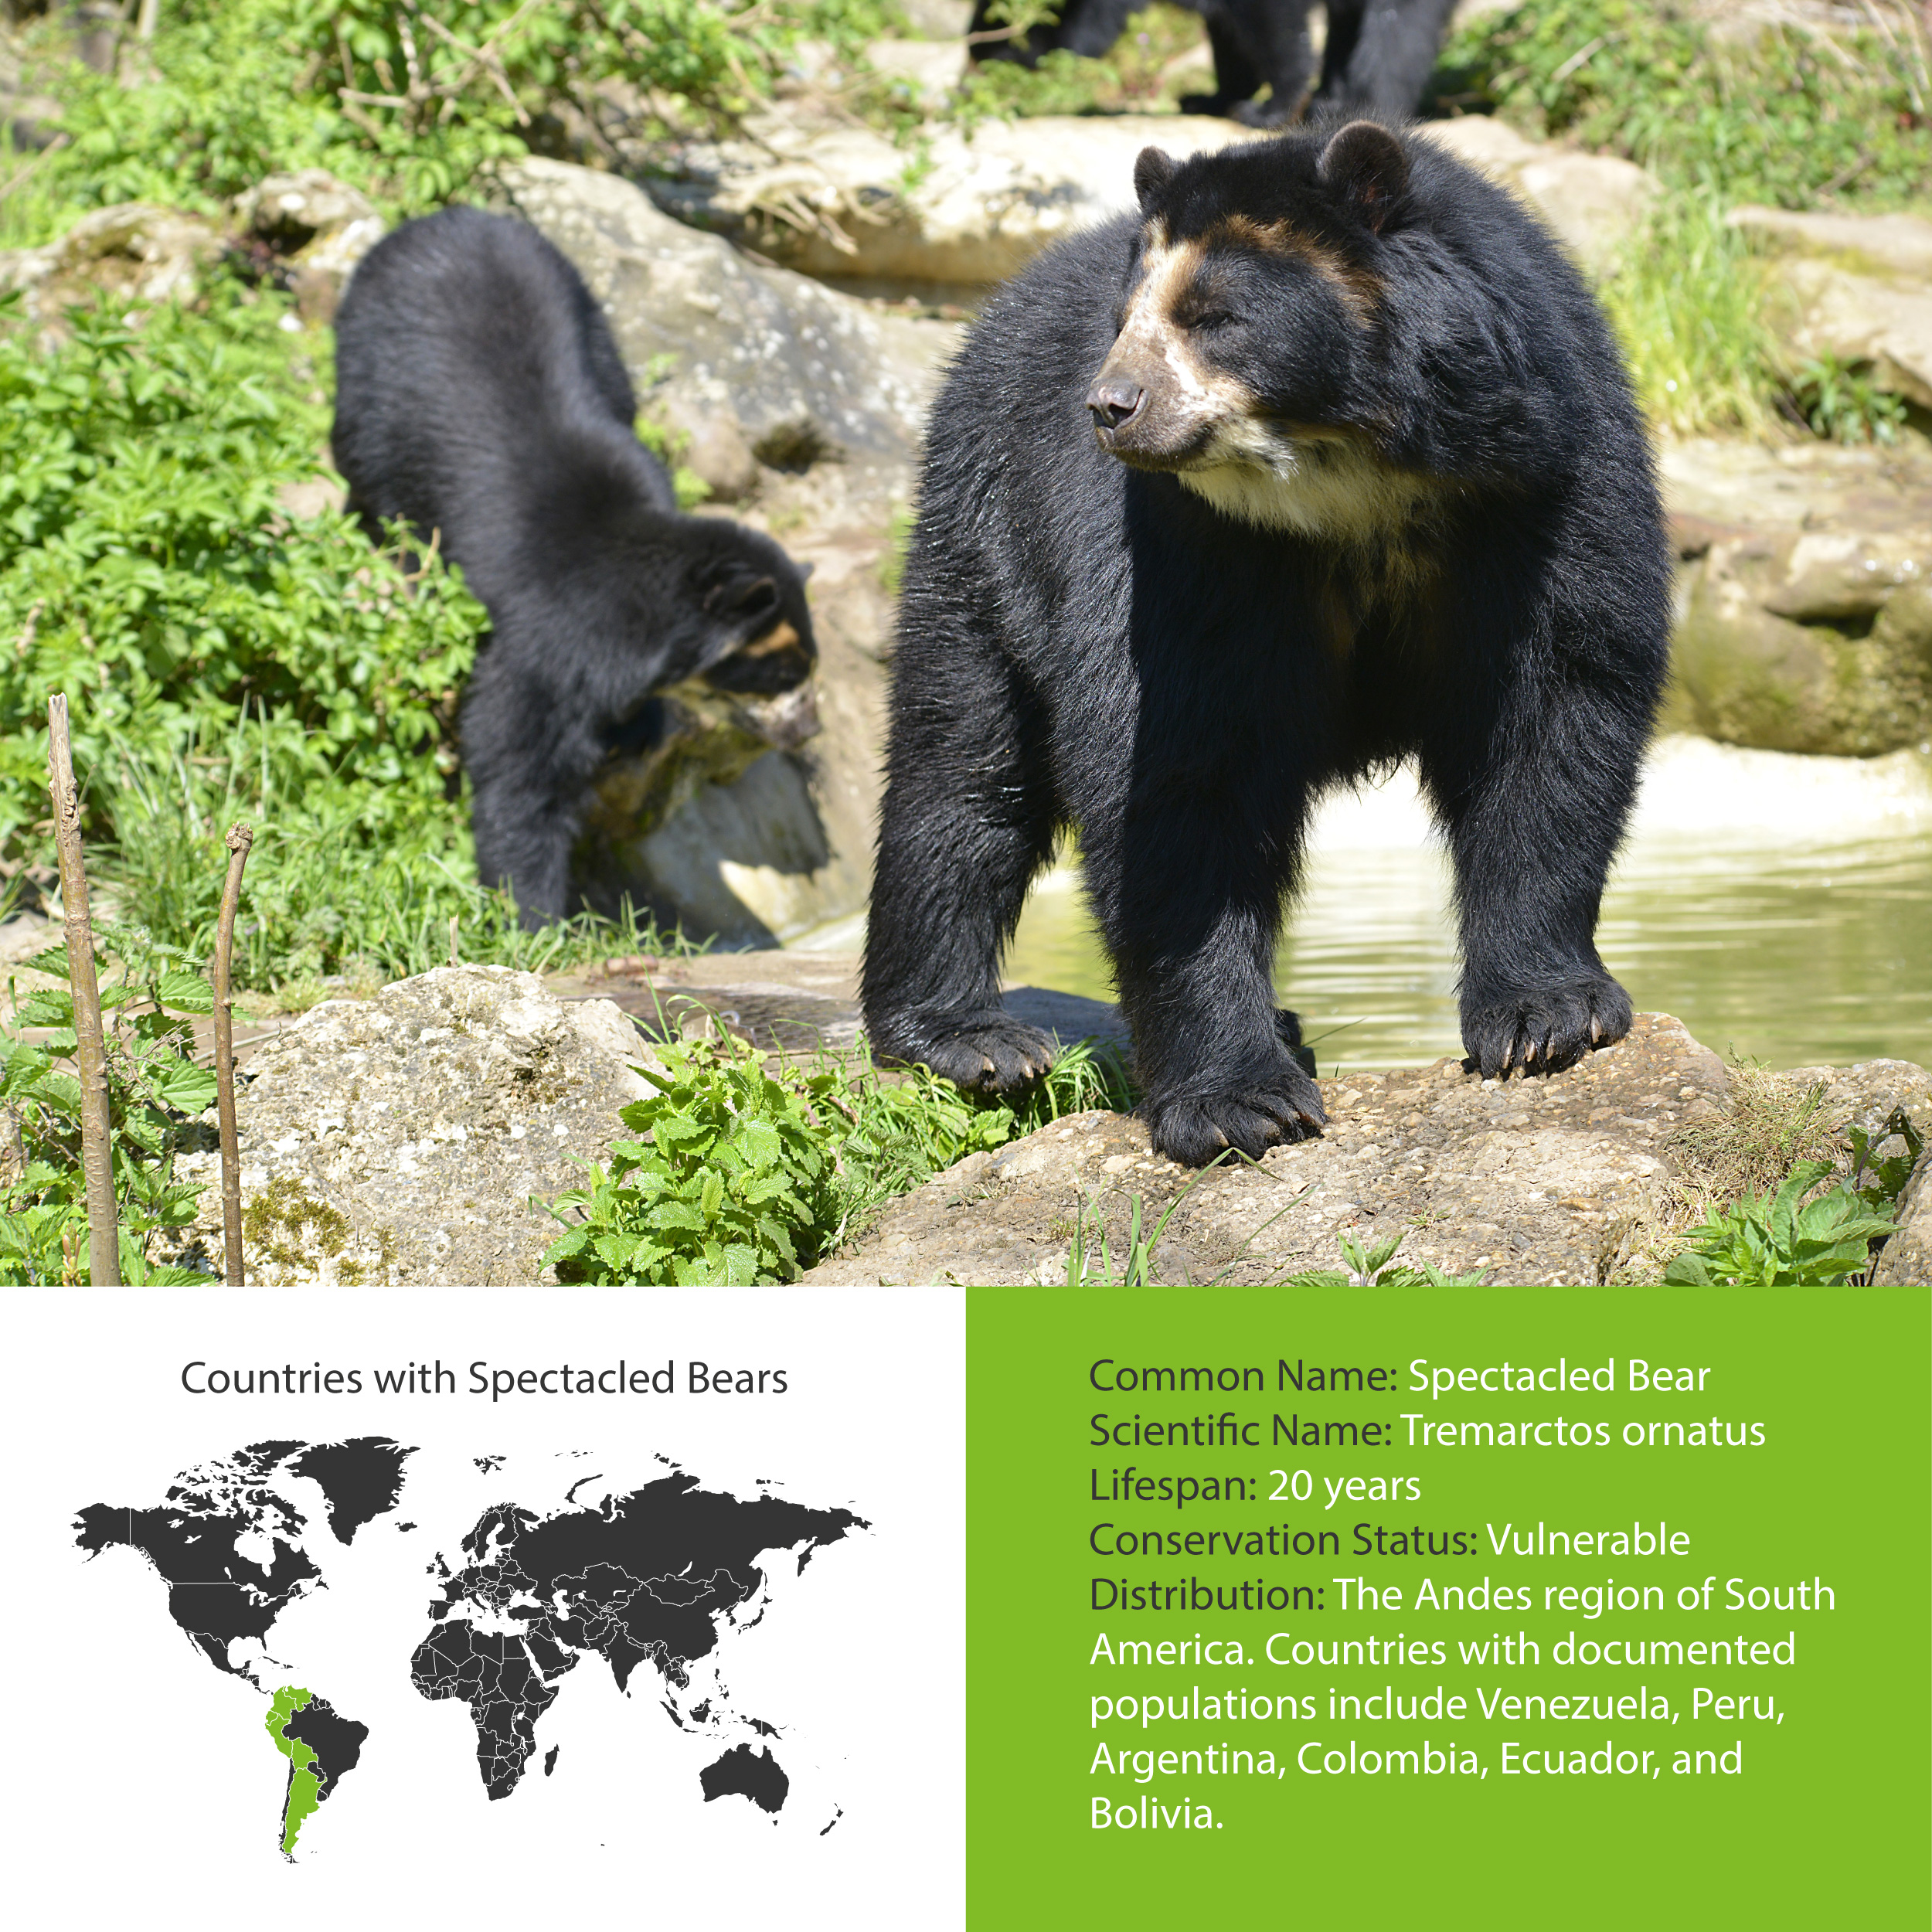 Spectacled Bear Distribution